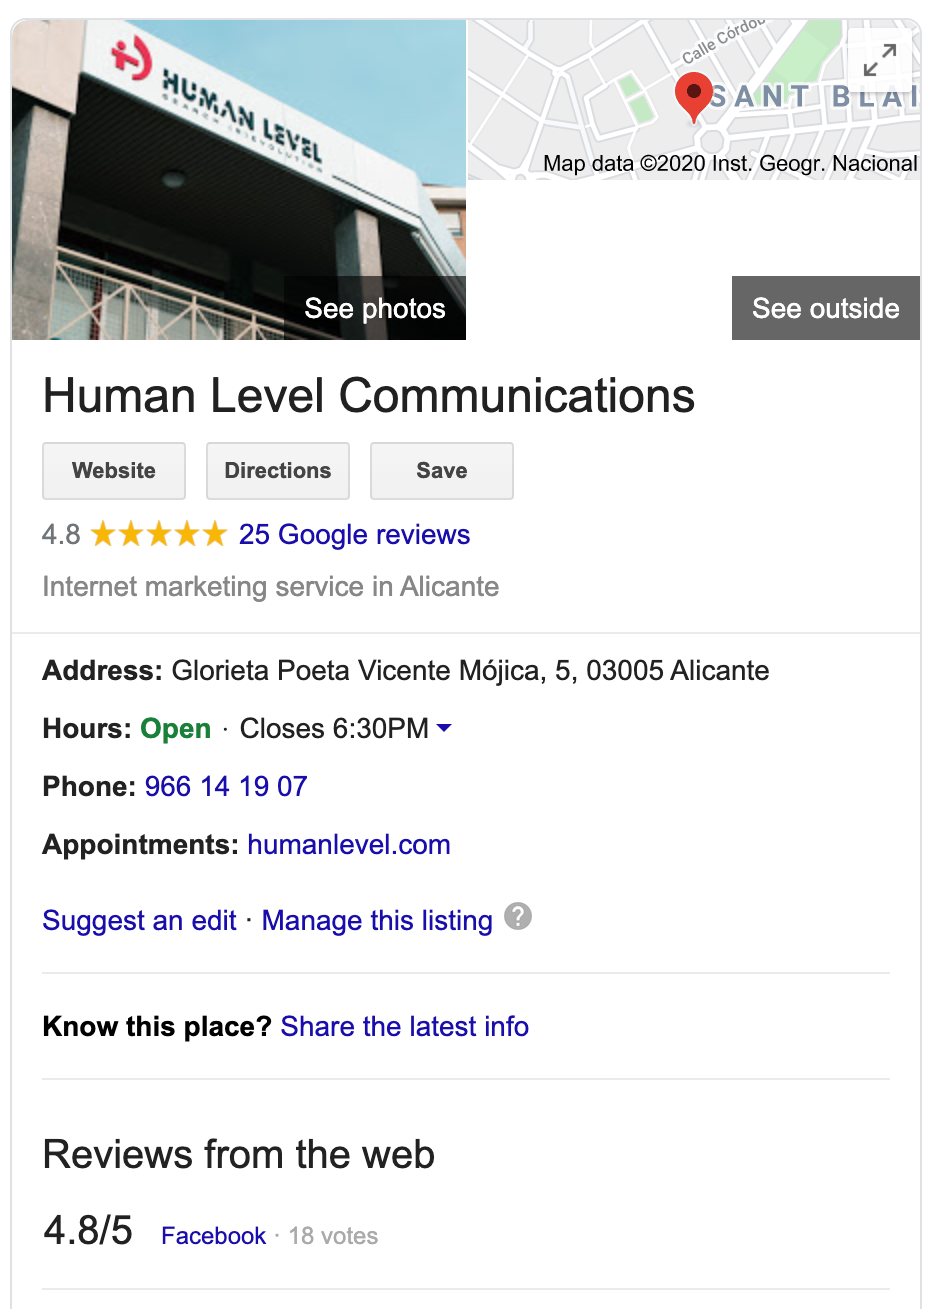 Local business knowledge graph